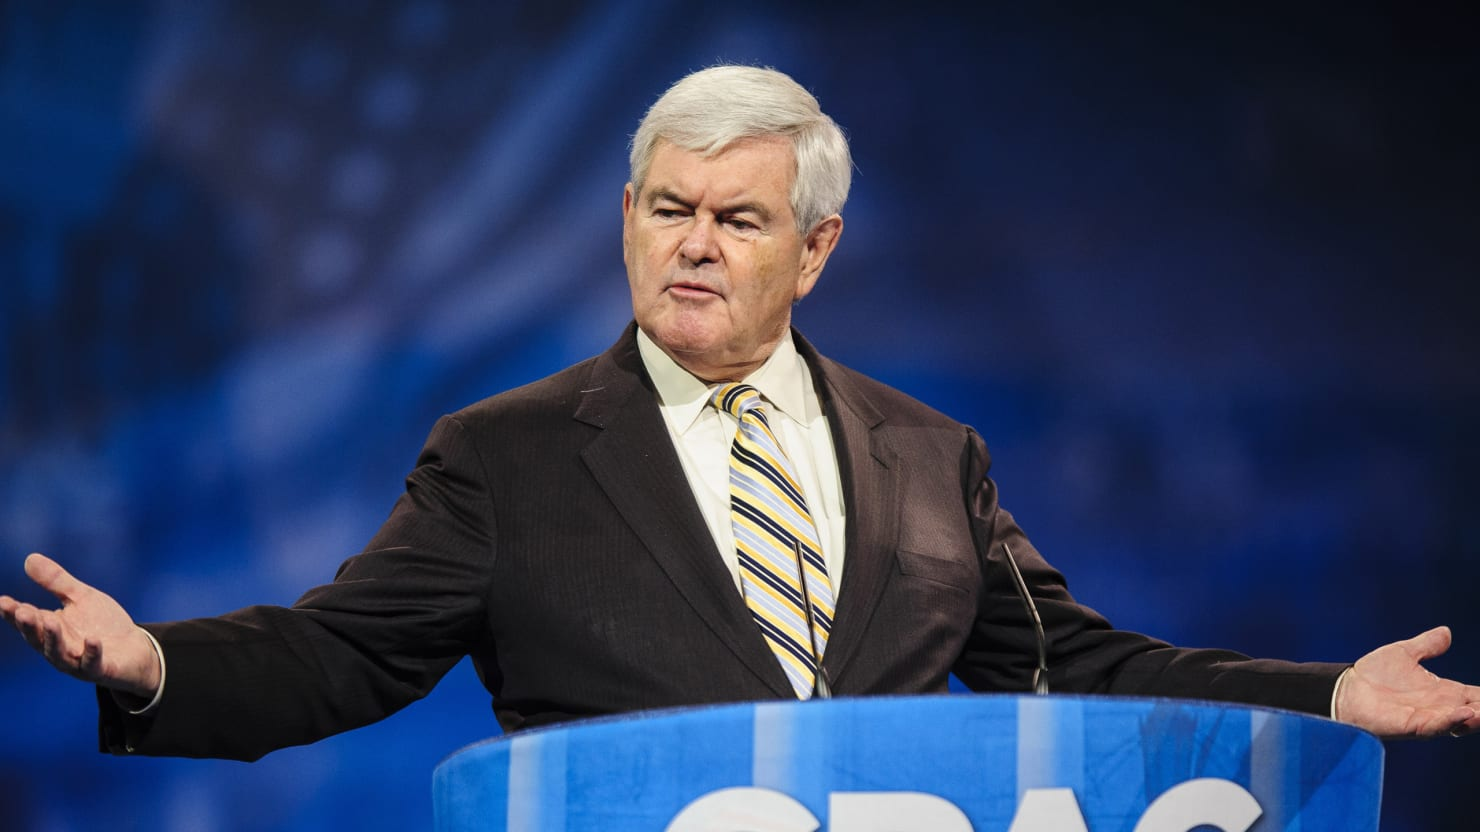 Newt Gingrich: Republicans Can't Win Just By Beating Up Hillary Clinton